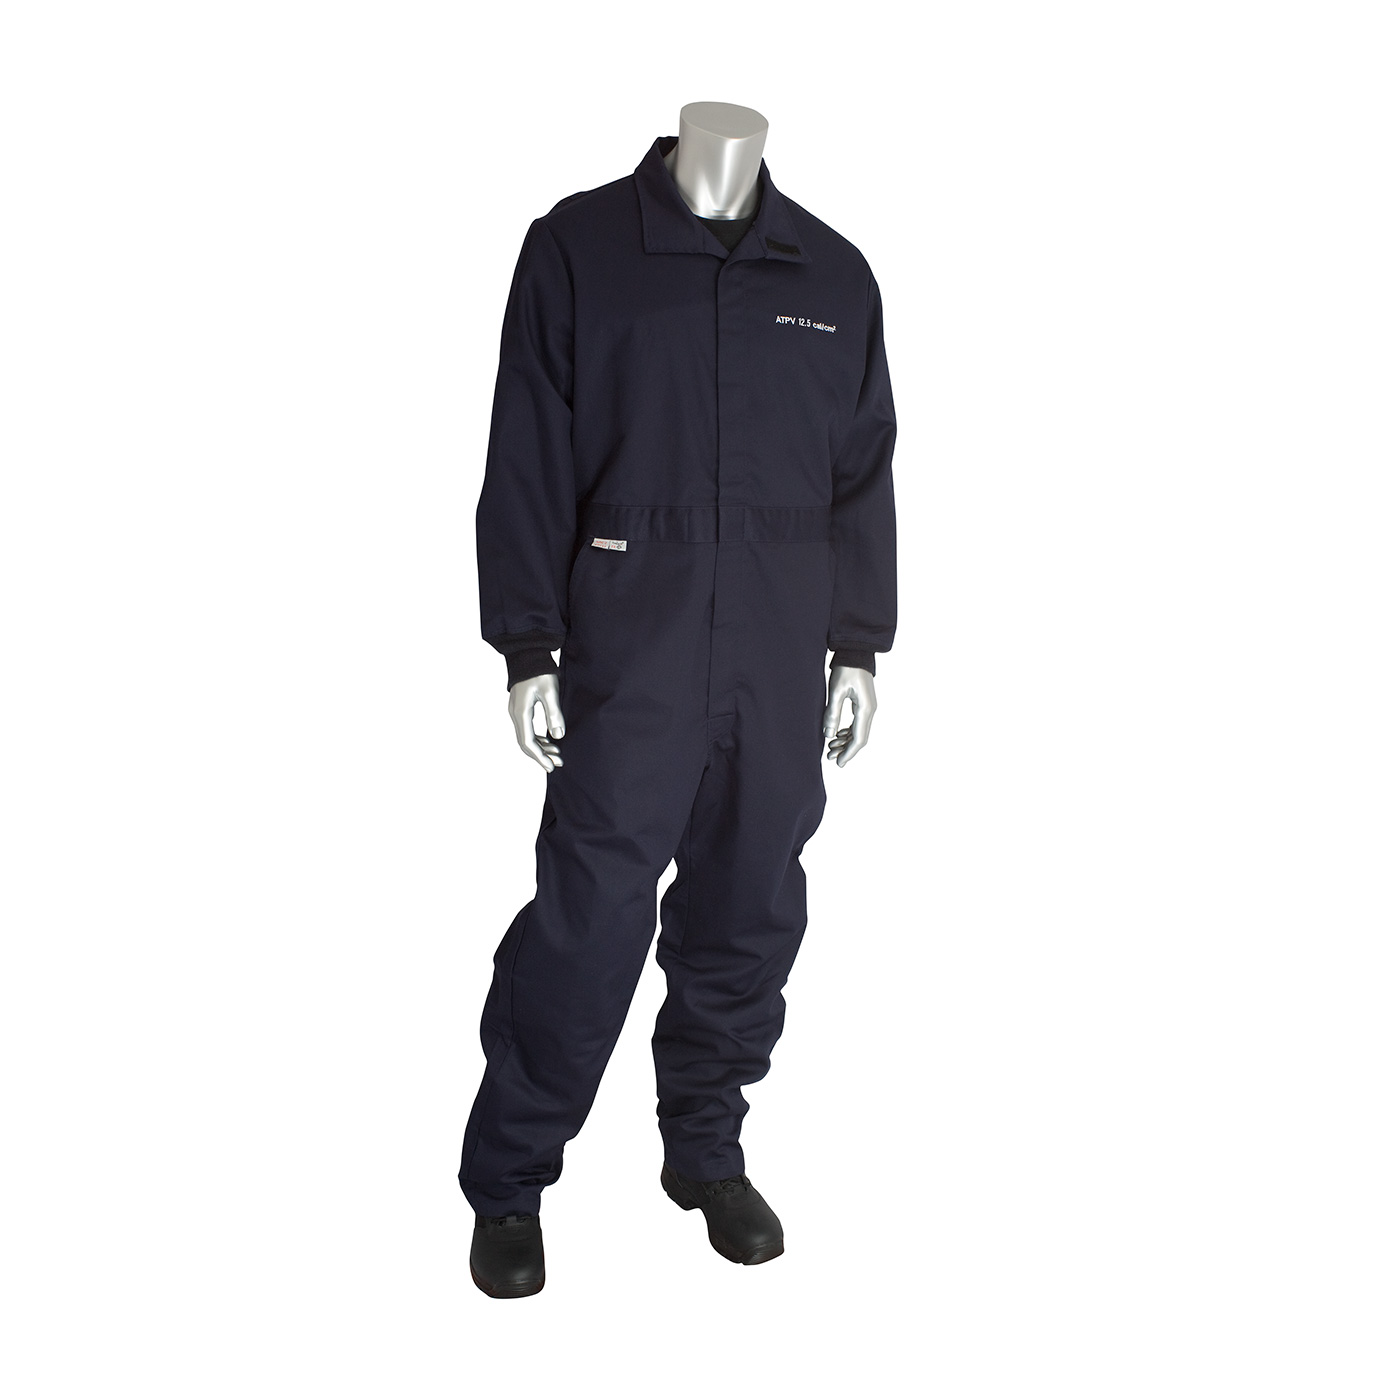 AR/FR Dual Certified Coverall - 12 Cal/cm2, Navy, M